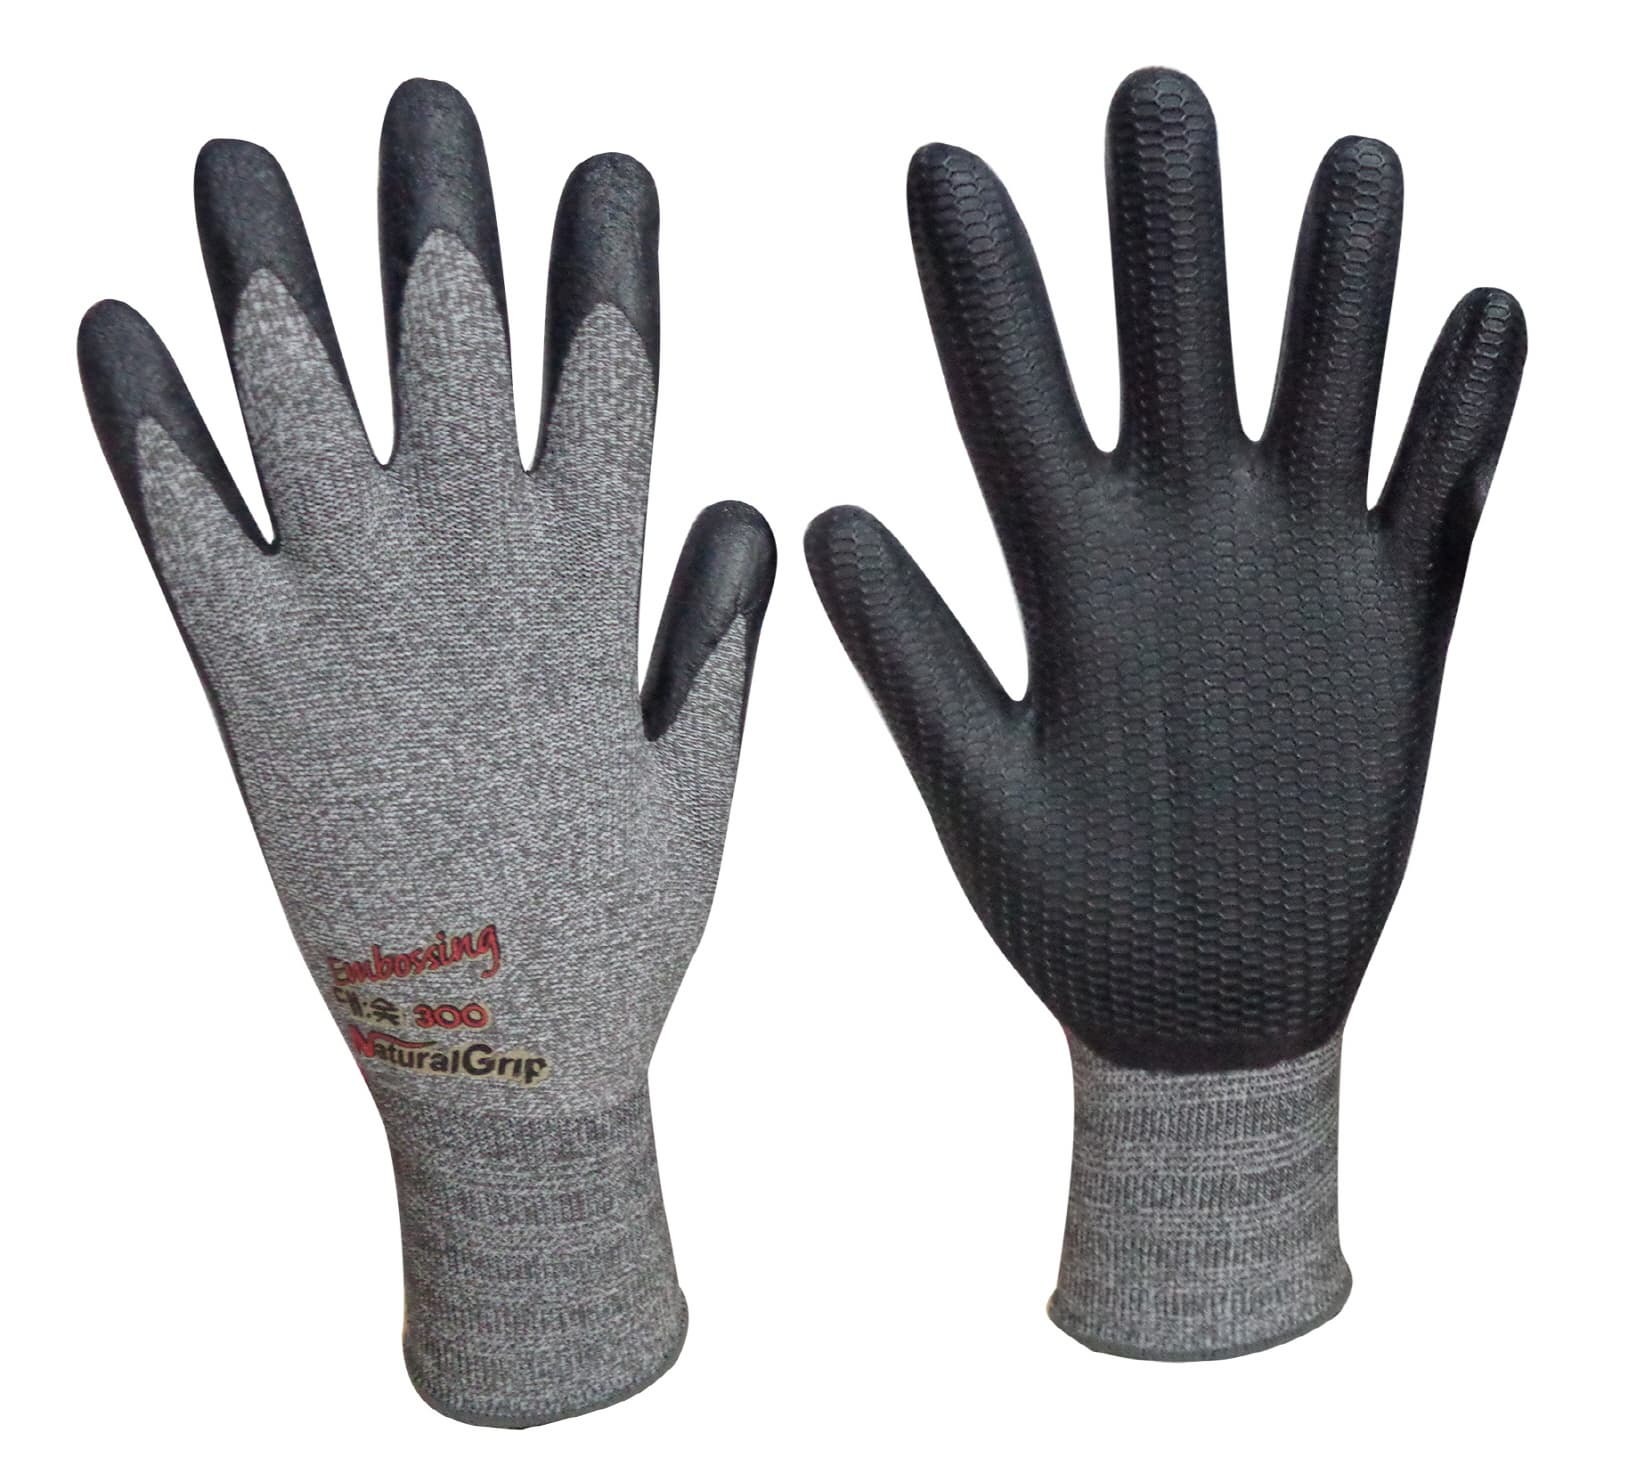 Natural Grip300 Bamboo charcoal_NBR Embossing coating gloves